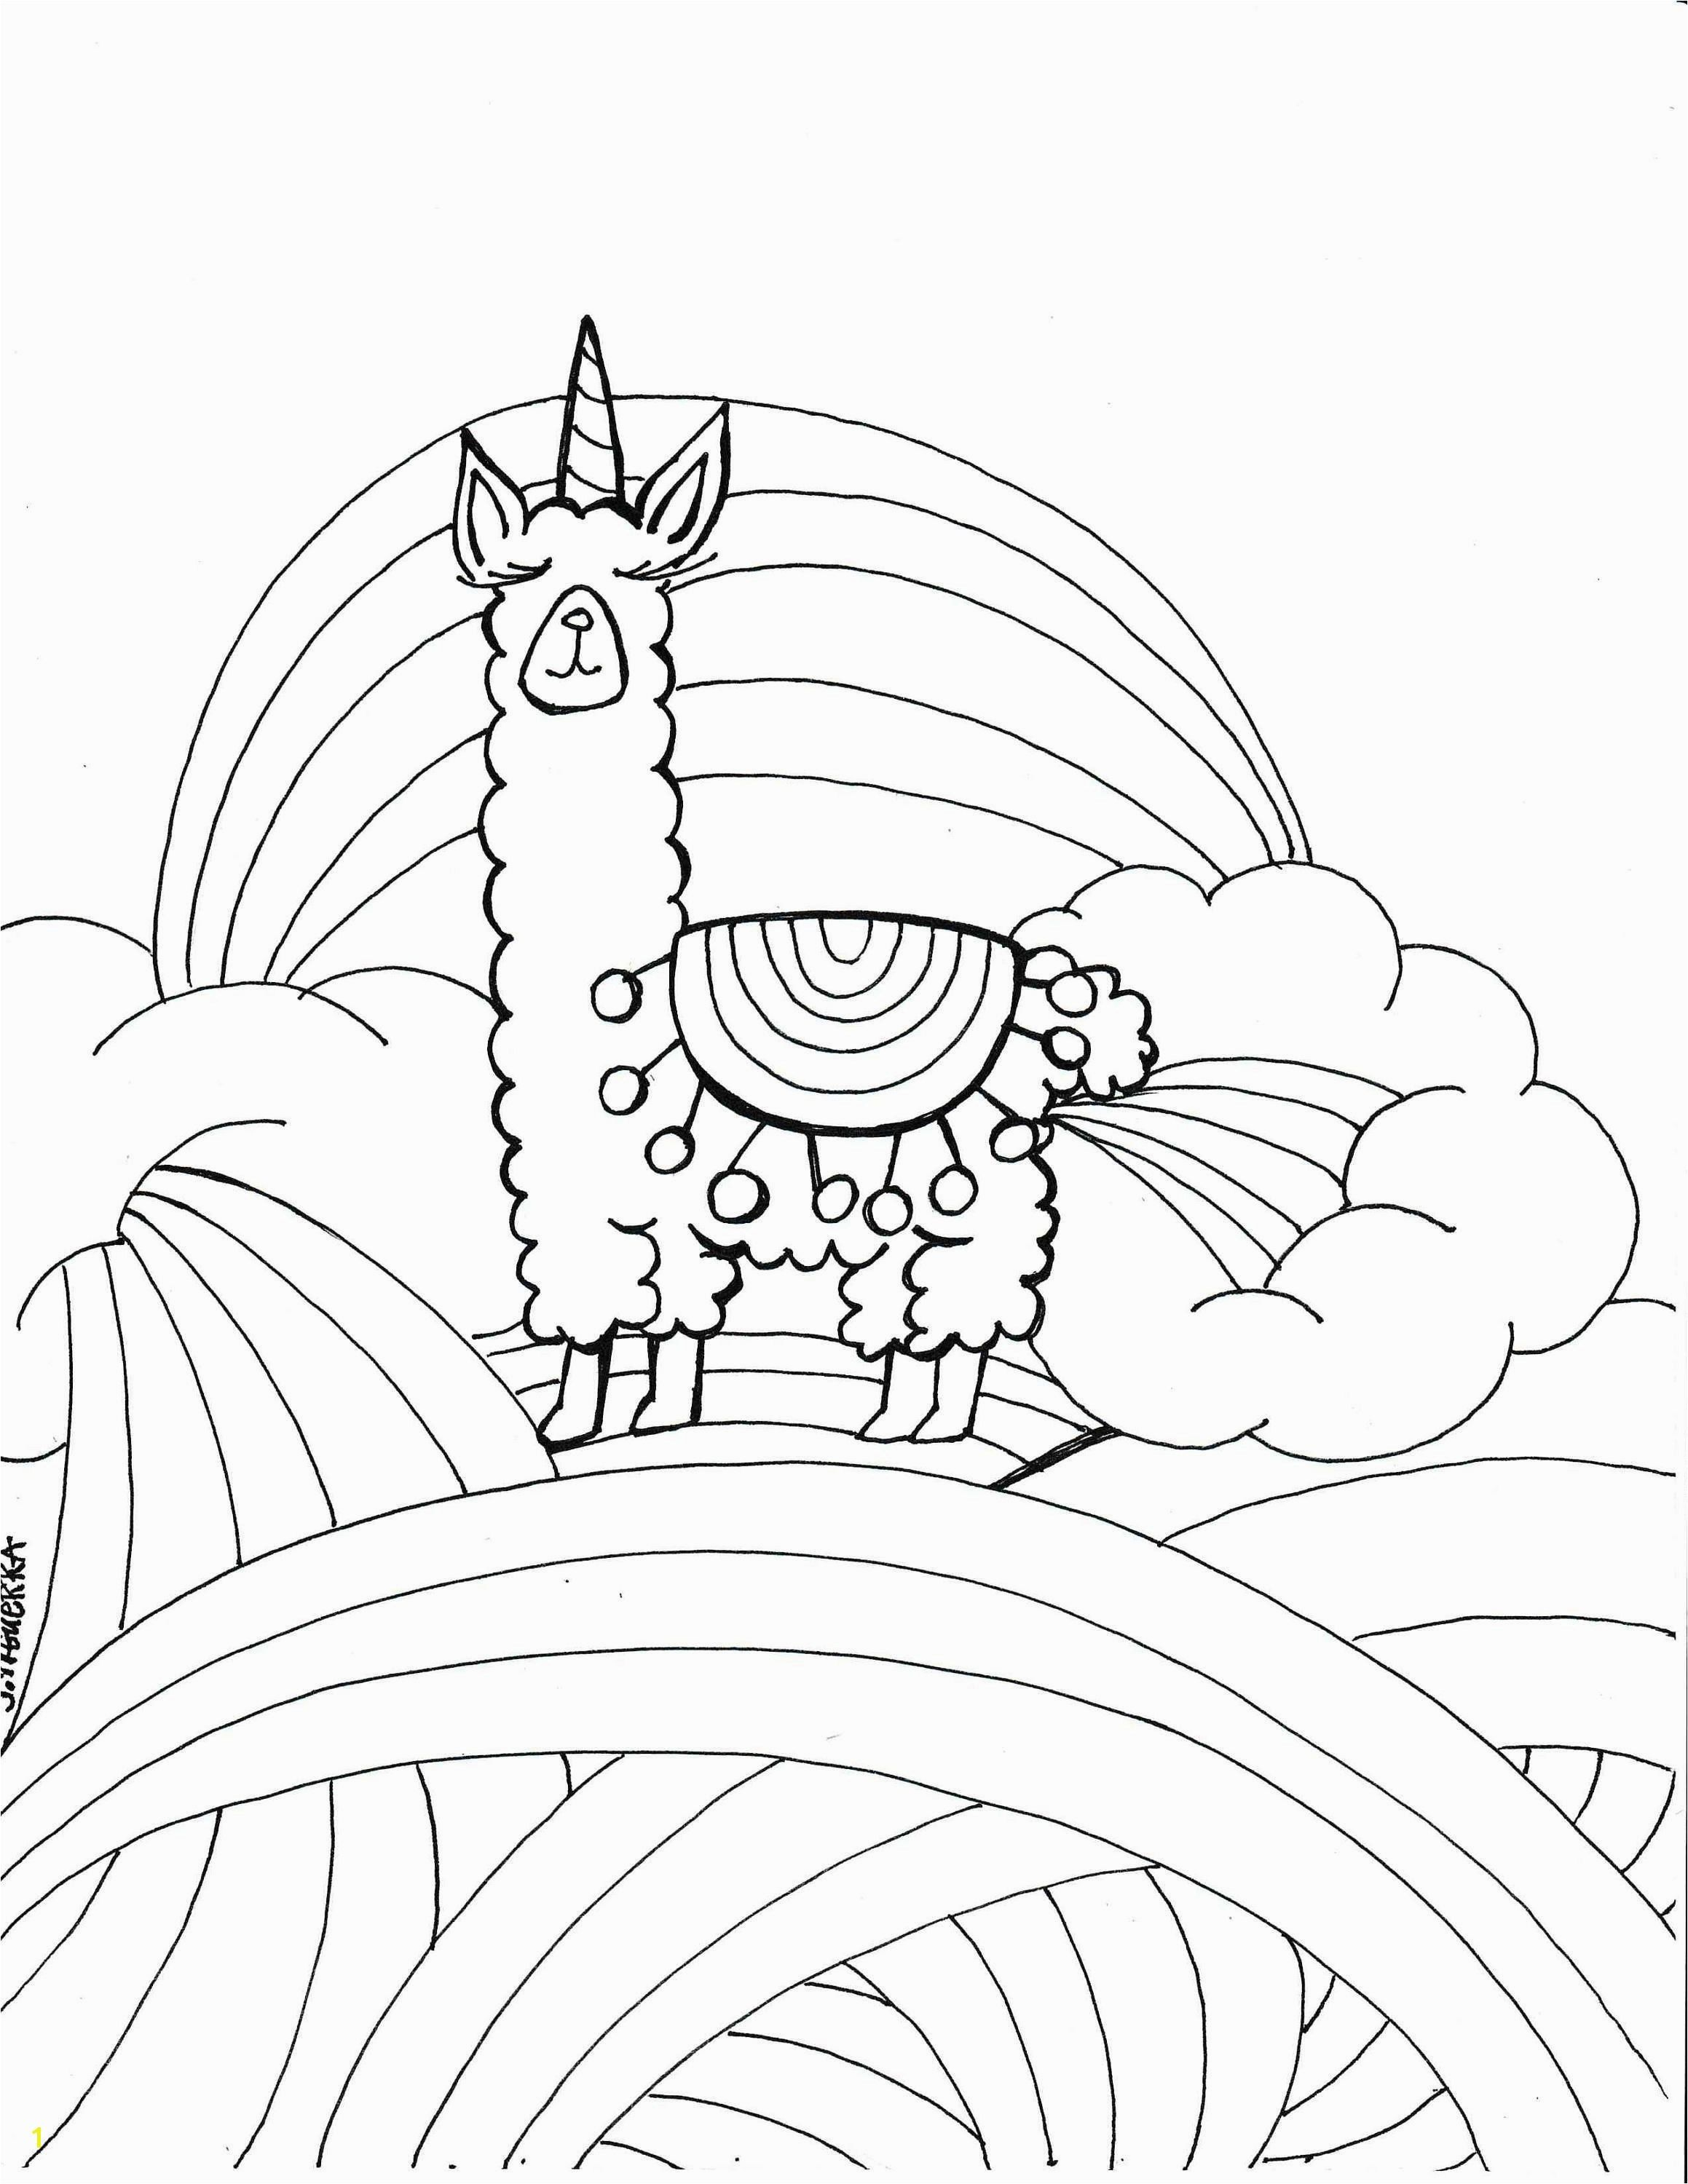 Printable Cute Llama Coloring Page For Kids Kawaii Llama Etsy Coloring Pages For Kids Cute Llama Coloring Pages